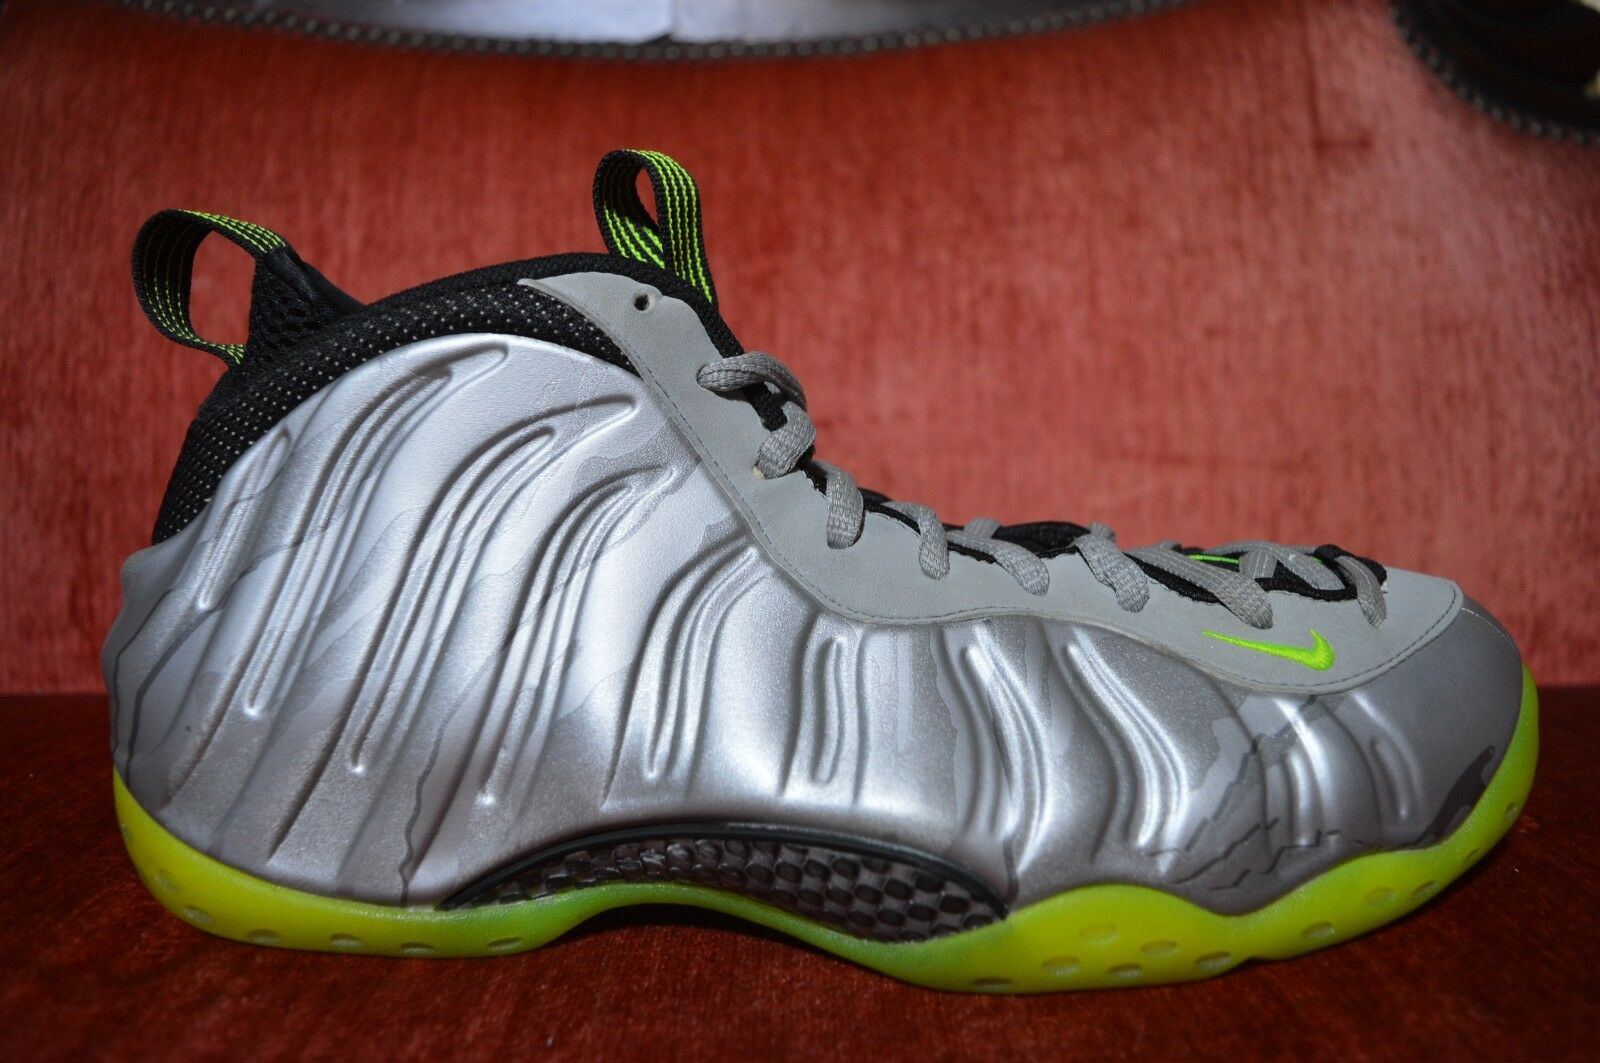 Nike Air PMR Foamposite one 1 PMR Air Volt Metallic Plata Camo 575420-004 11,5 estacional de liquidación a38761